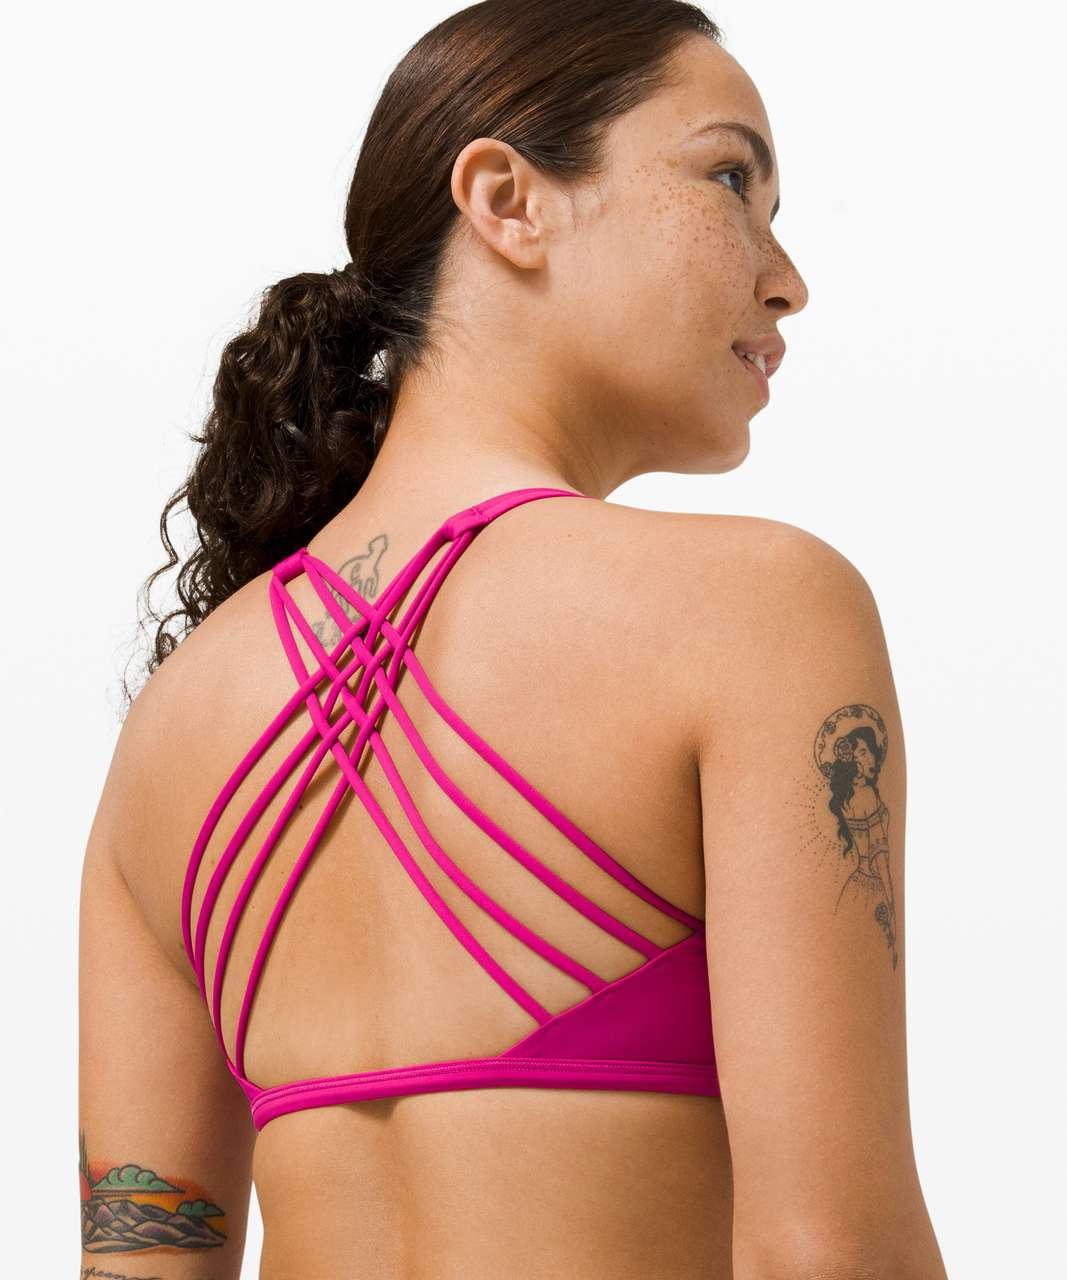 Lululemon Free to Be Bra - Wild *Light Support, A/B Cup - Ripened Raspberry